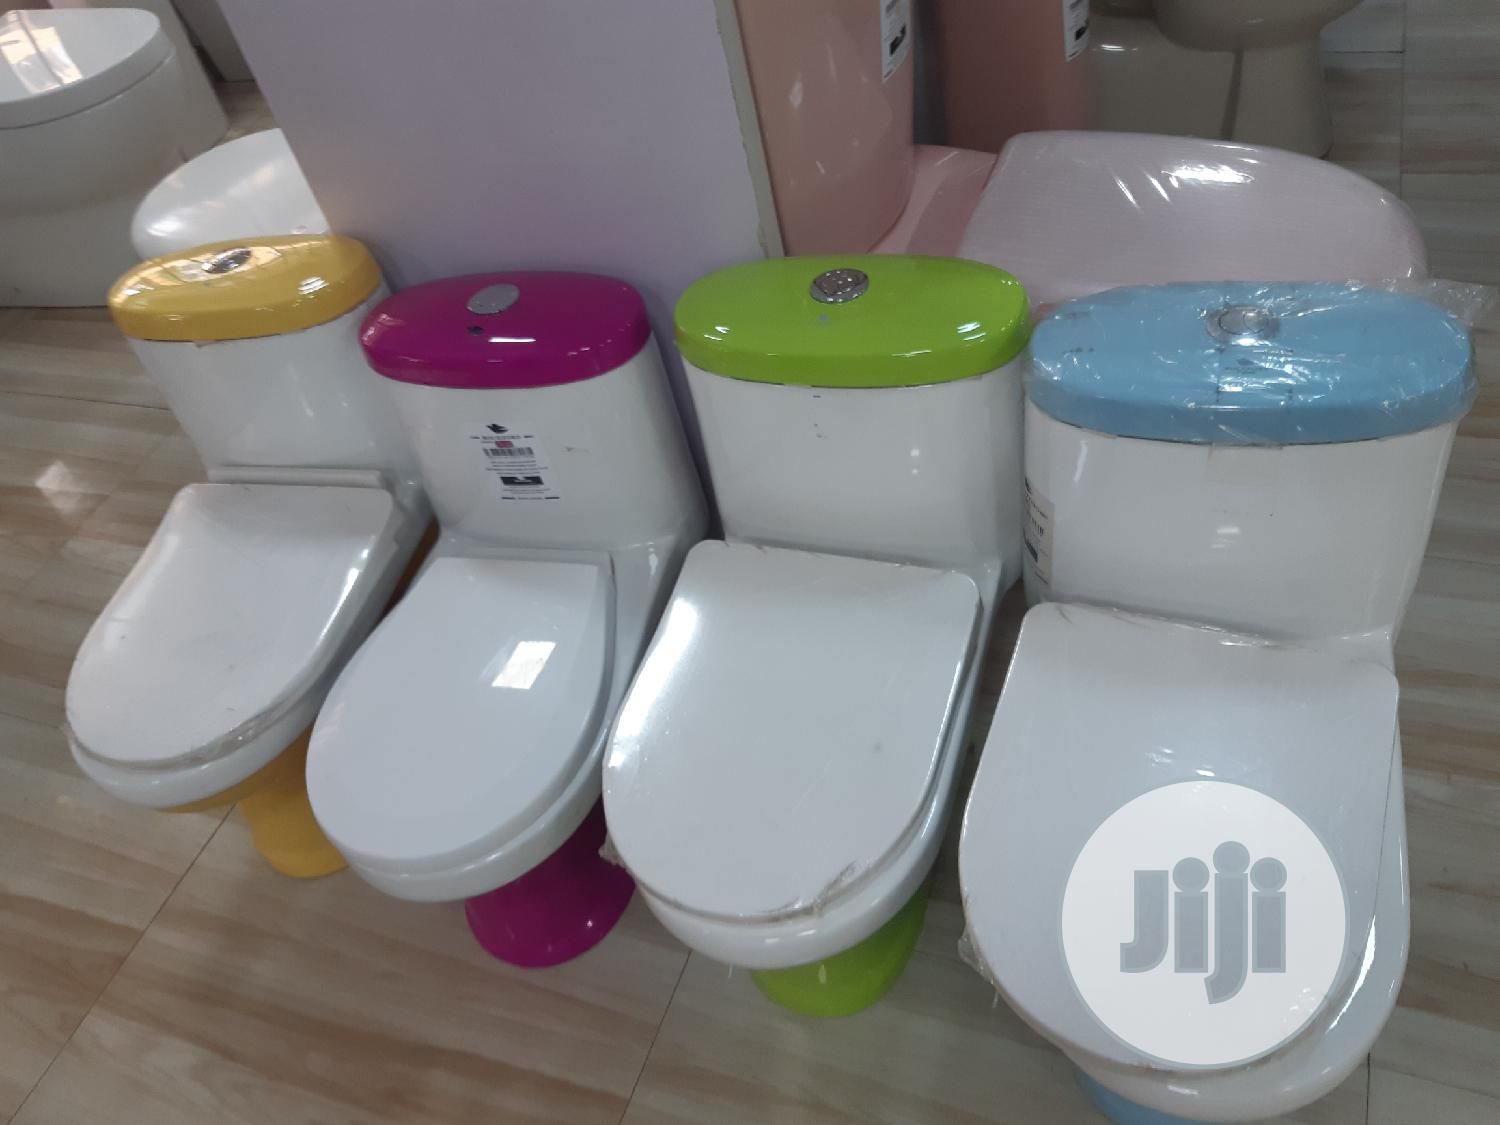 Quality Kids Water Closet for Homes and Schools